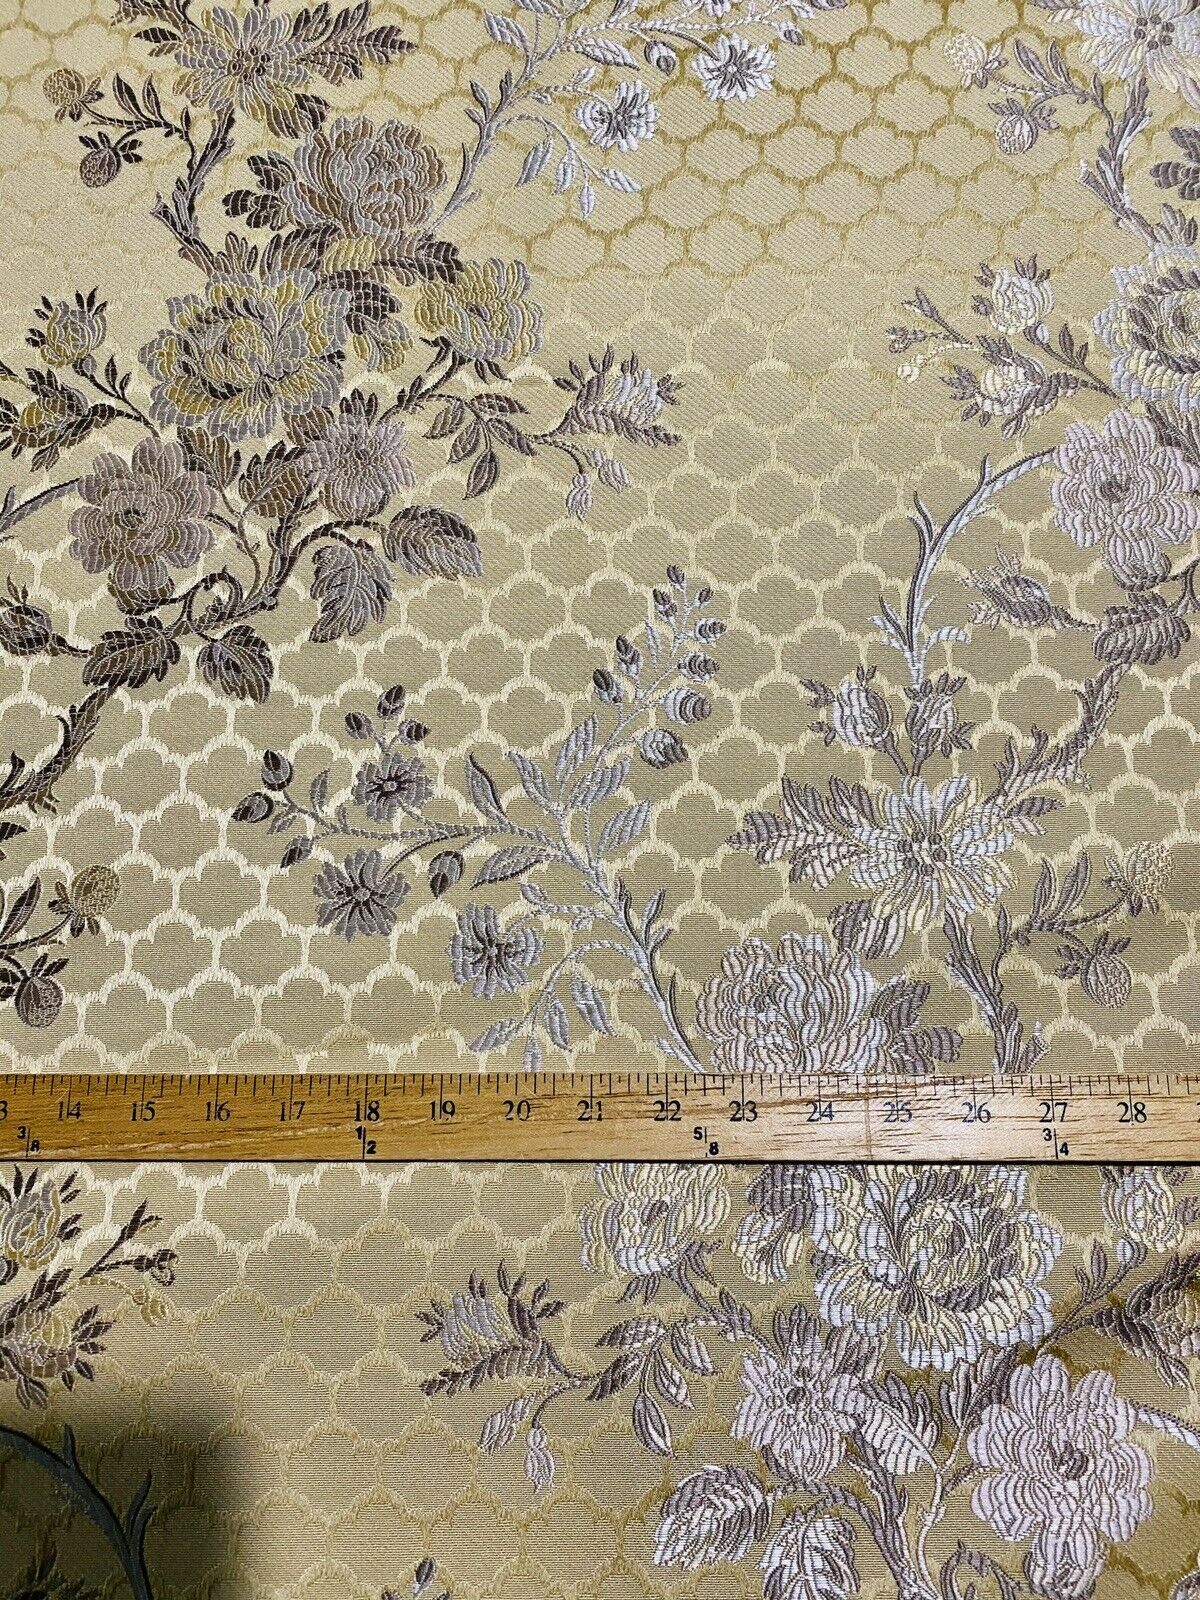 NEW Brocade Satin Floral Honeycomb Decorating & Upholstery Fabric-Antique Yellow